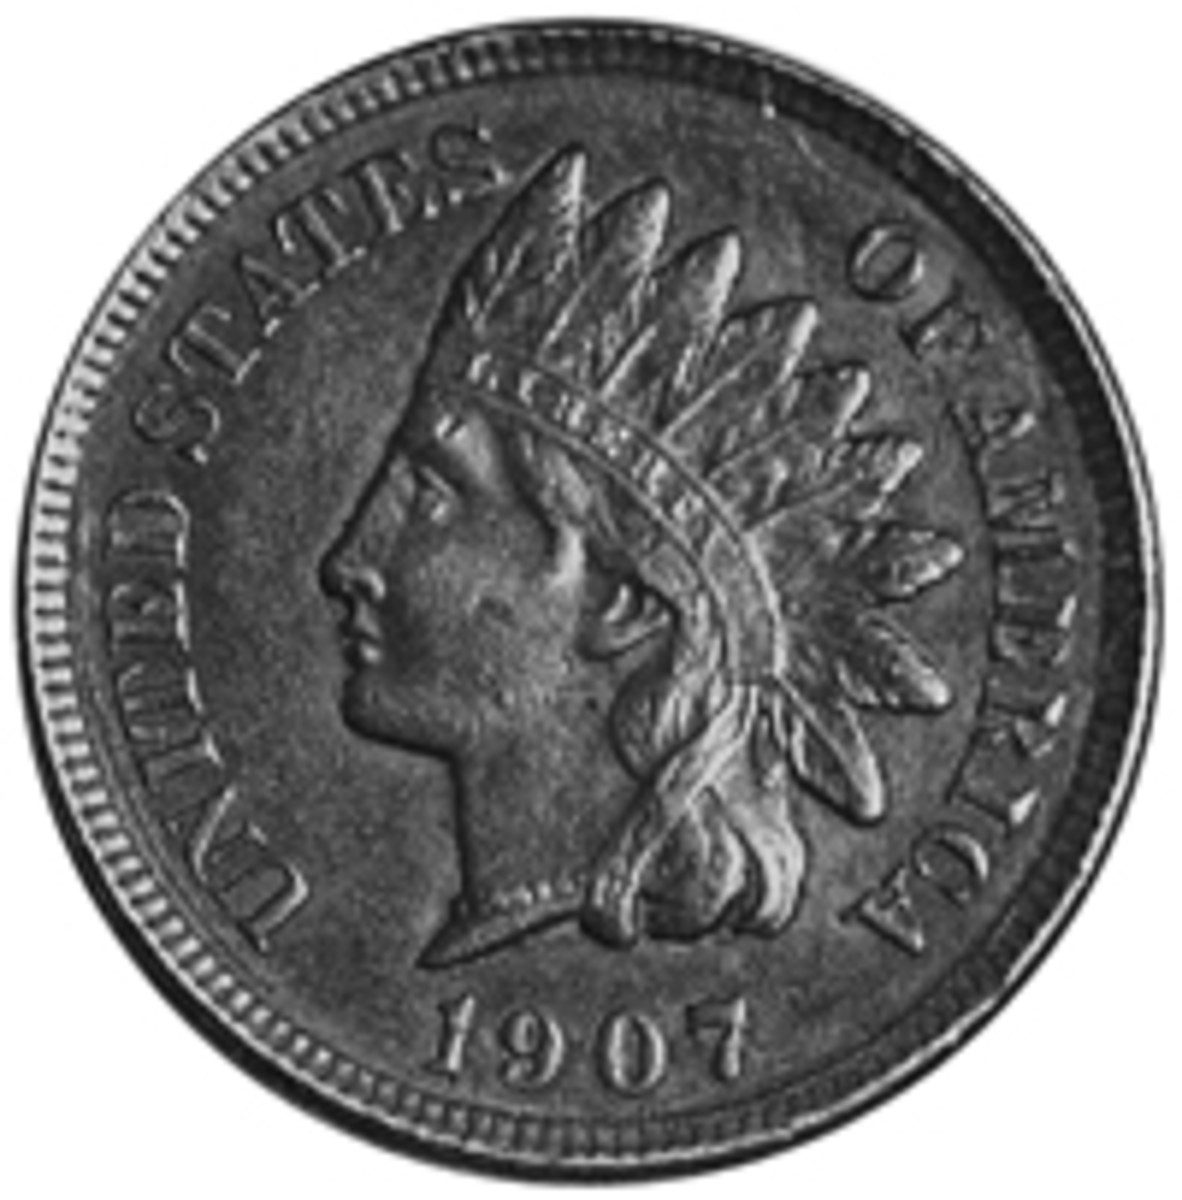 A 1907 Indian cent, along with a 1906 nickel, were the first coins purchased by the author more than 50 years ago.